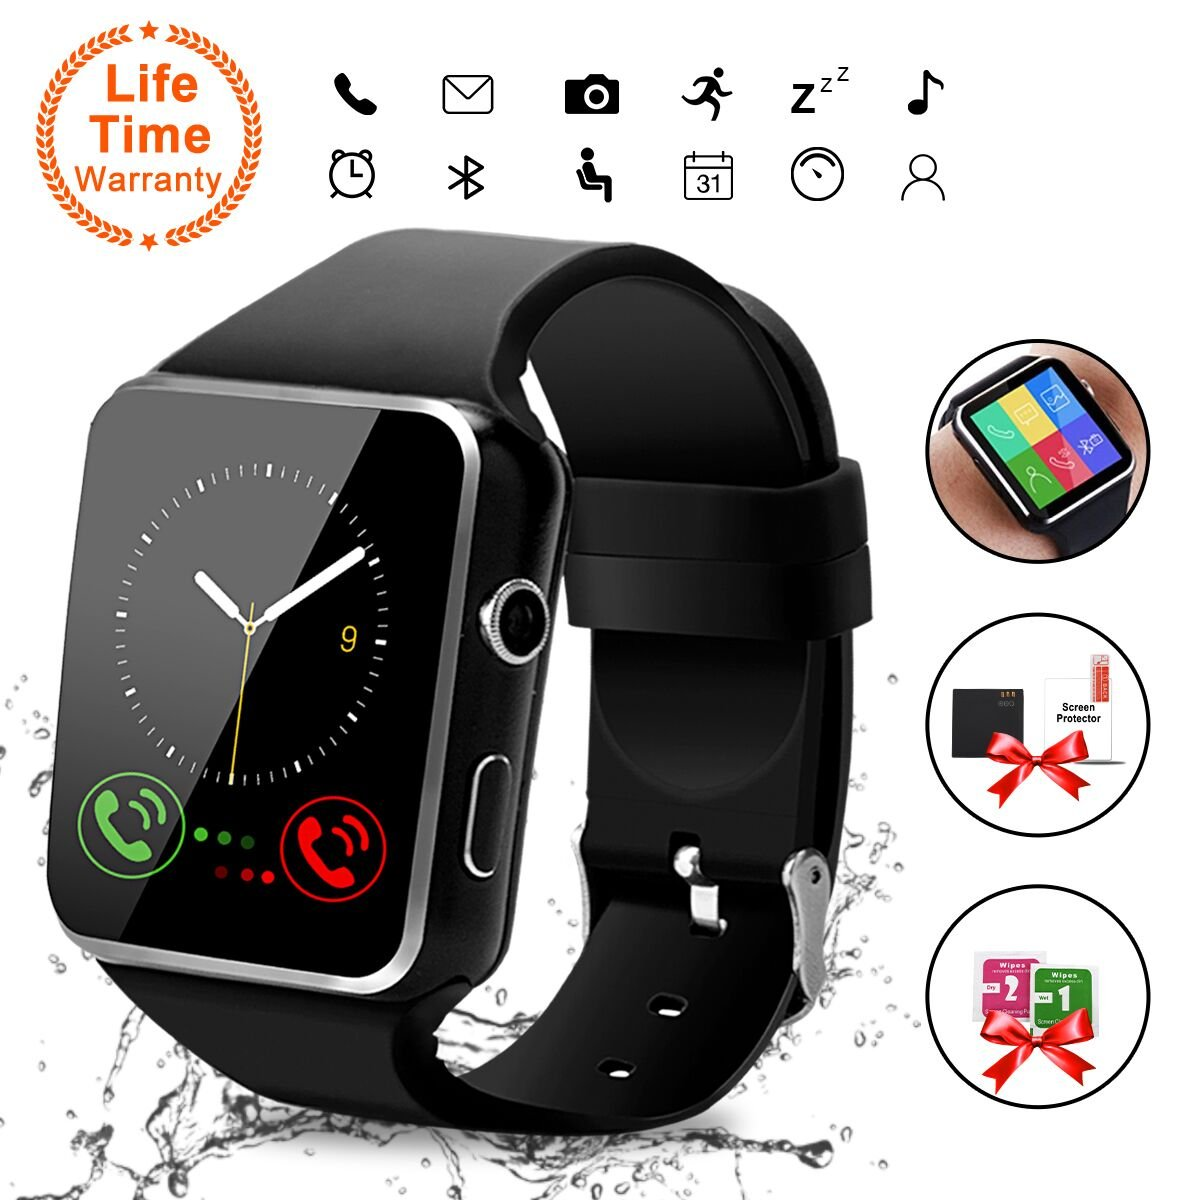 ... Wrist Watch with Camera/SIM Card Slot,Waterproof Smart Watch Sports Fitness Tracker Android Phone Watch Compatible with Android Phones Huawei Samsung